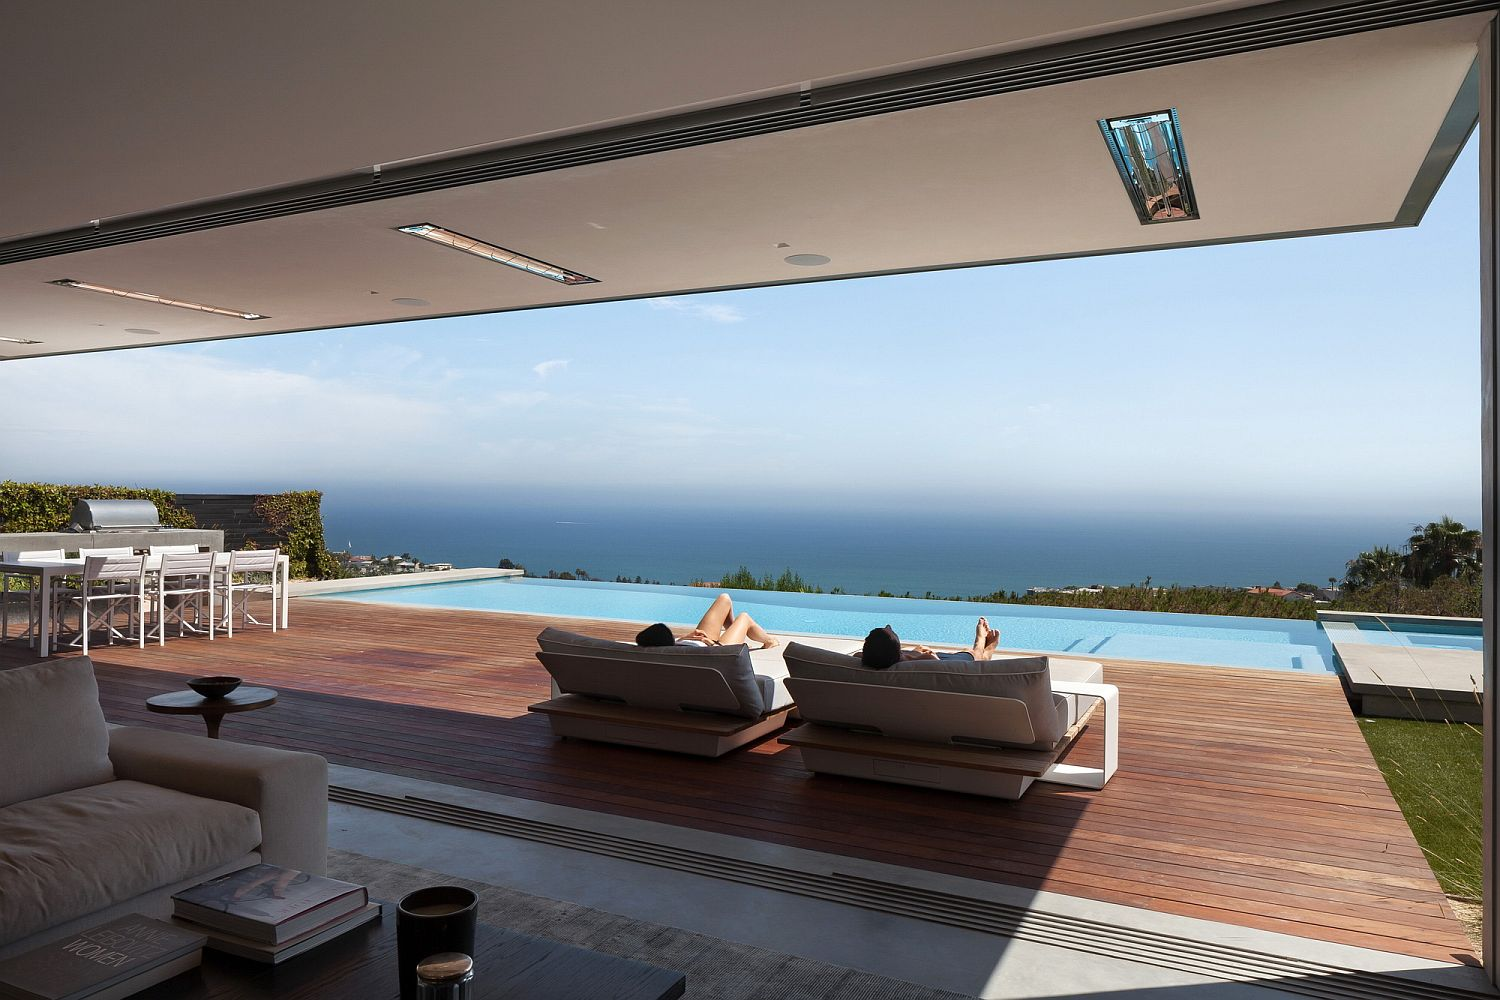 Spacious wooden deck next to the infinity pool overlooking the Pacific Ocean